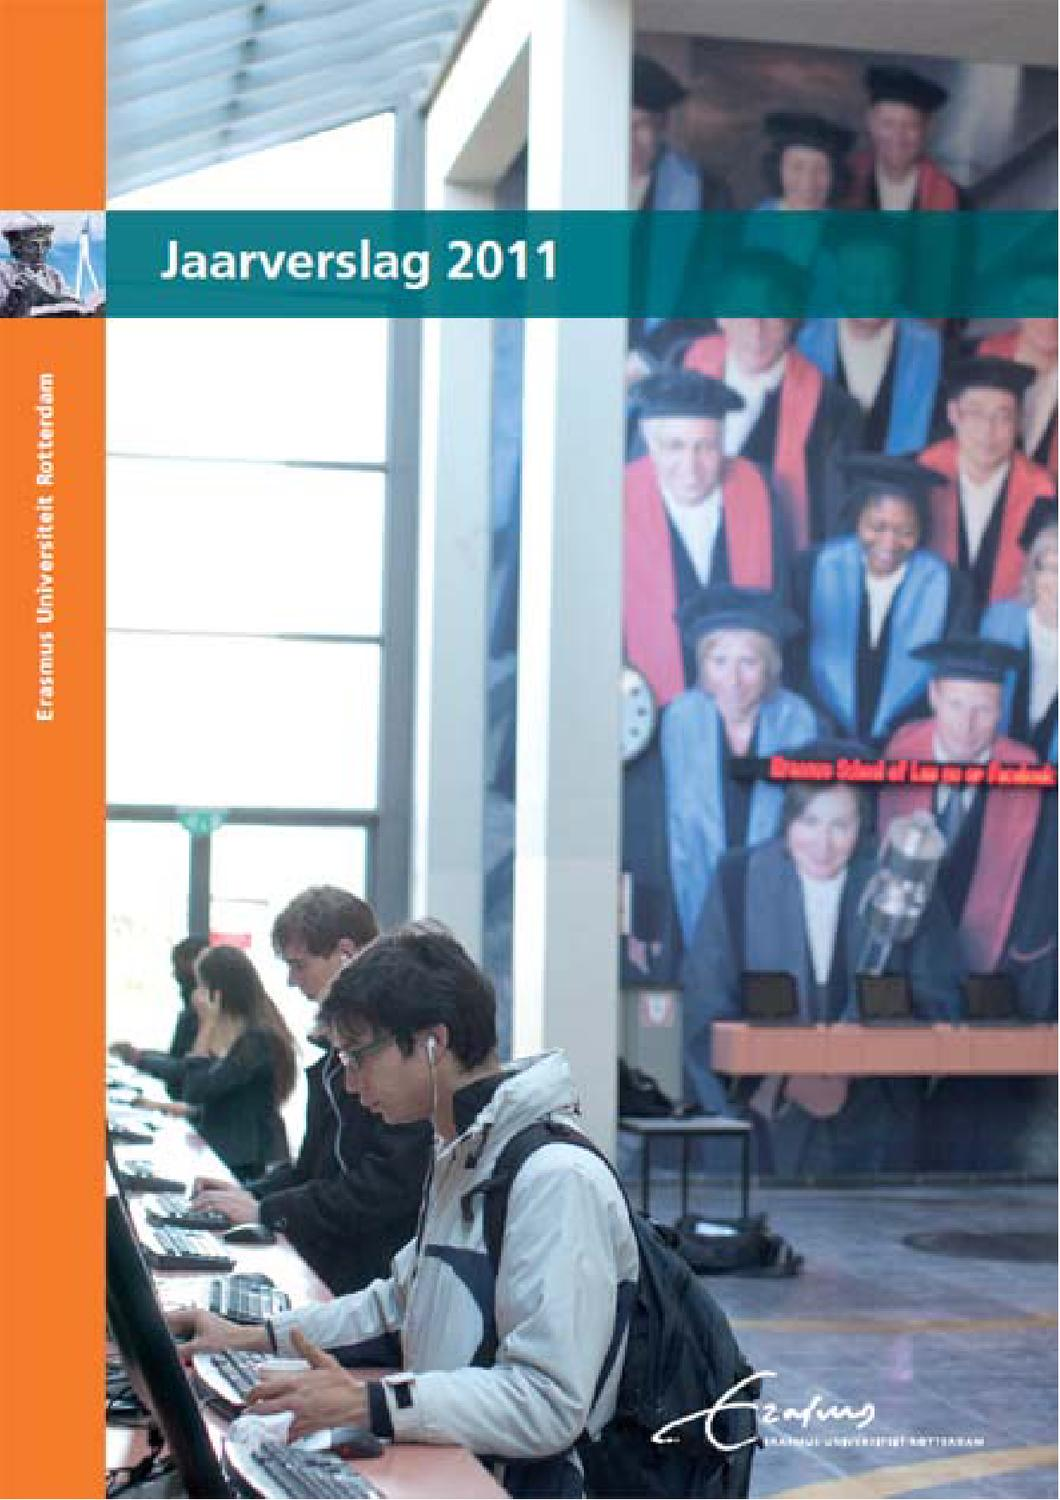 Radboud universiteit jaarverslag 2015 by radboud university   issuu